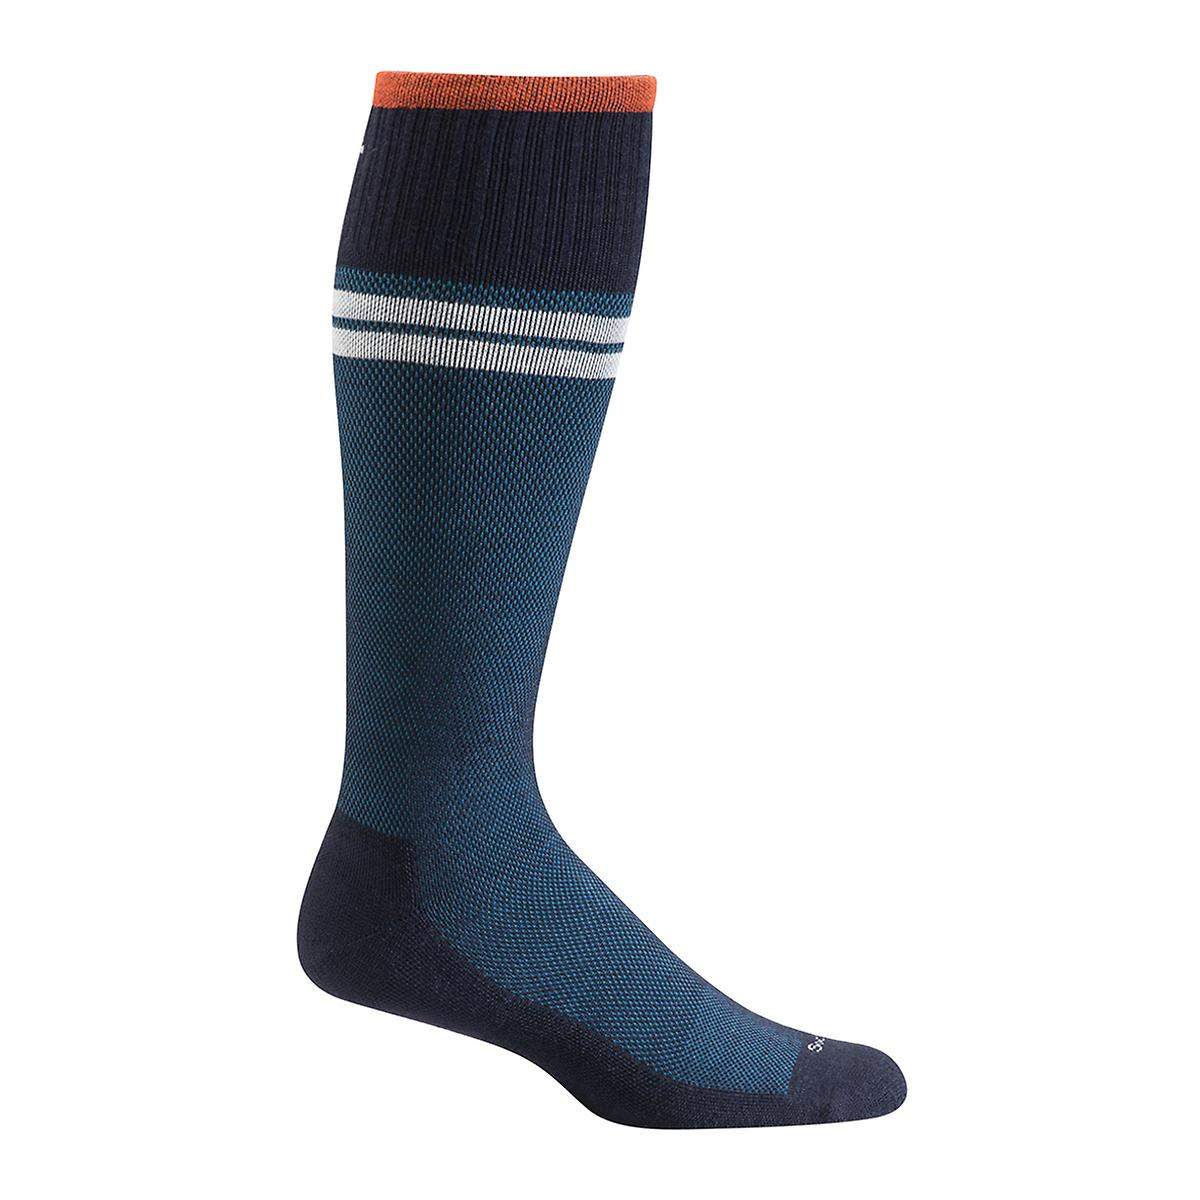 Navy Sportster Compression Socks